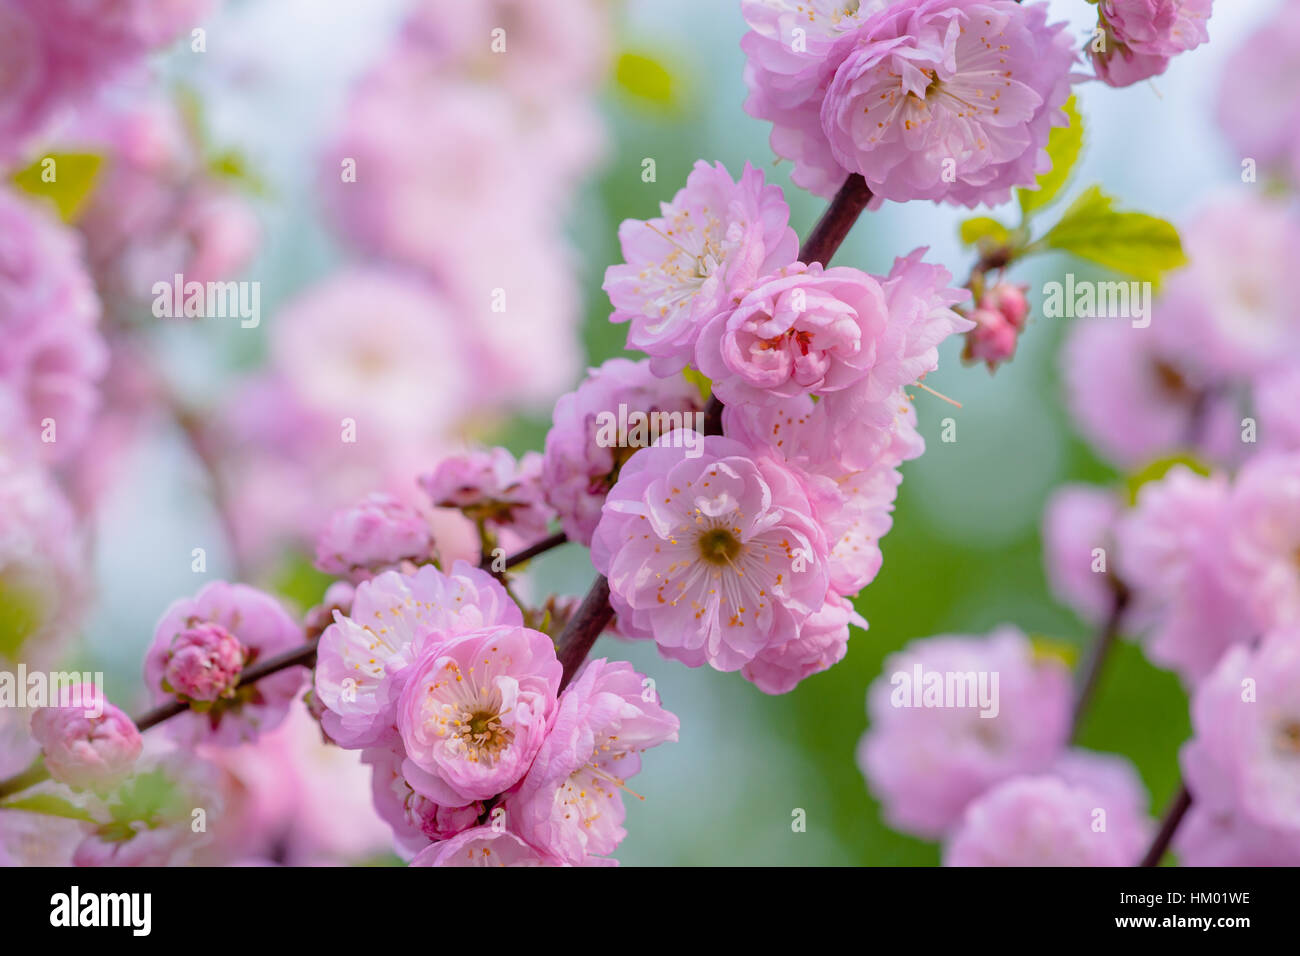 Pink flowers of flowering plum or flowering almond prunus triloba pink flowers of flowering plum or flowering almond prunus triloba sometimes the tree is called a shrubby cherry the joy and beauty of spring season mightylinksfo